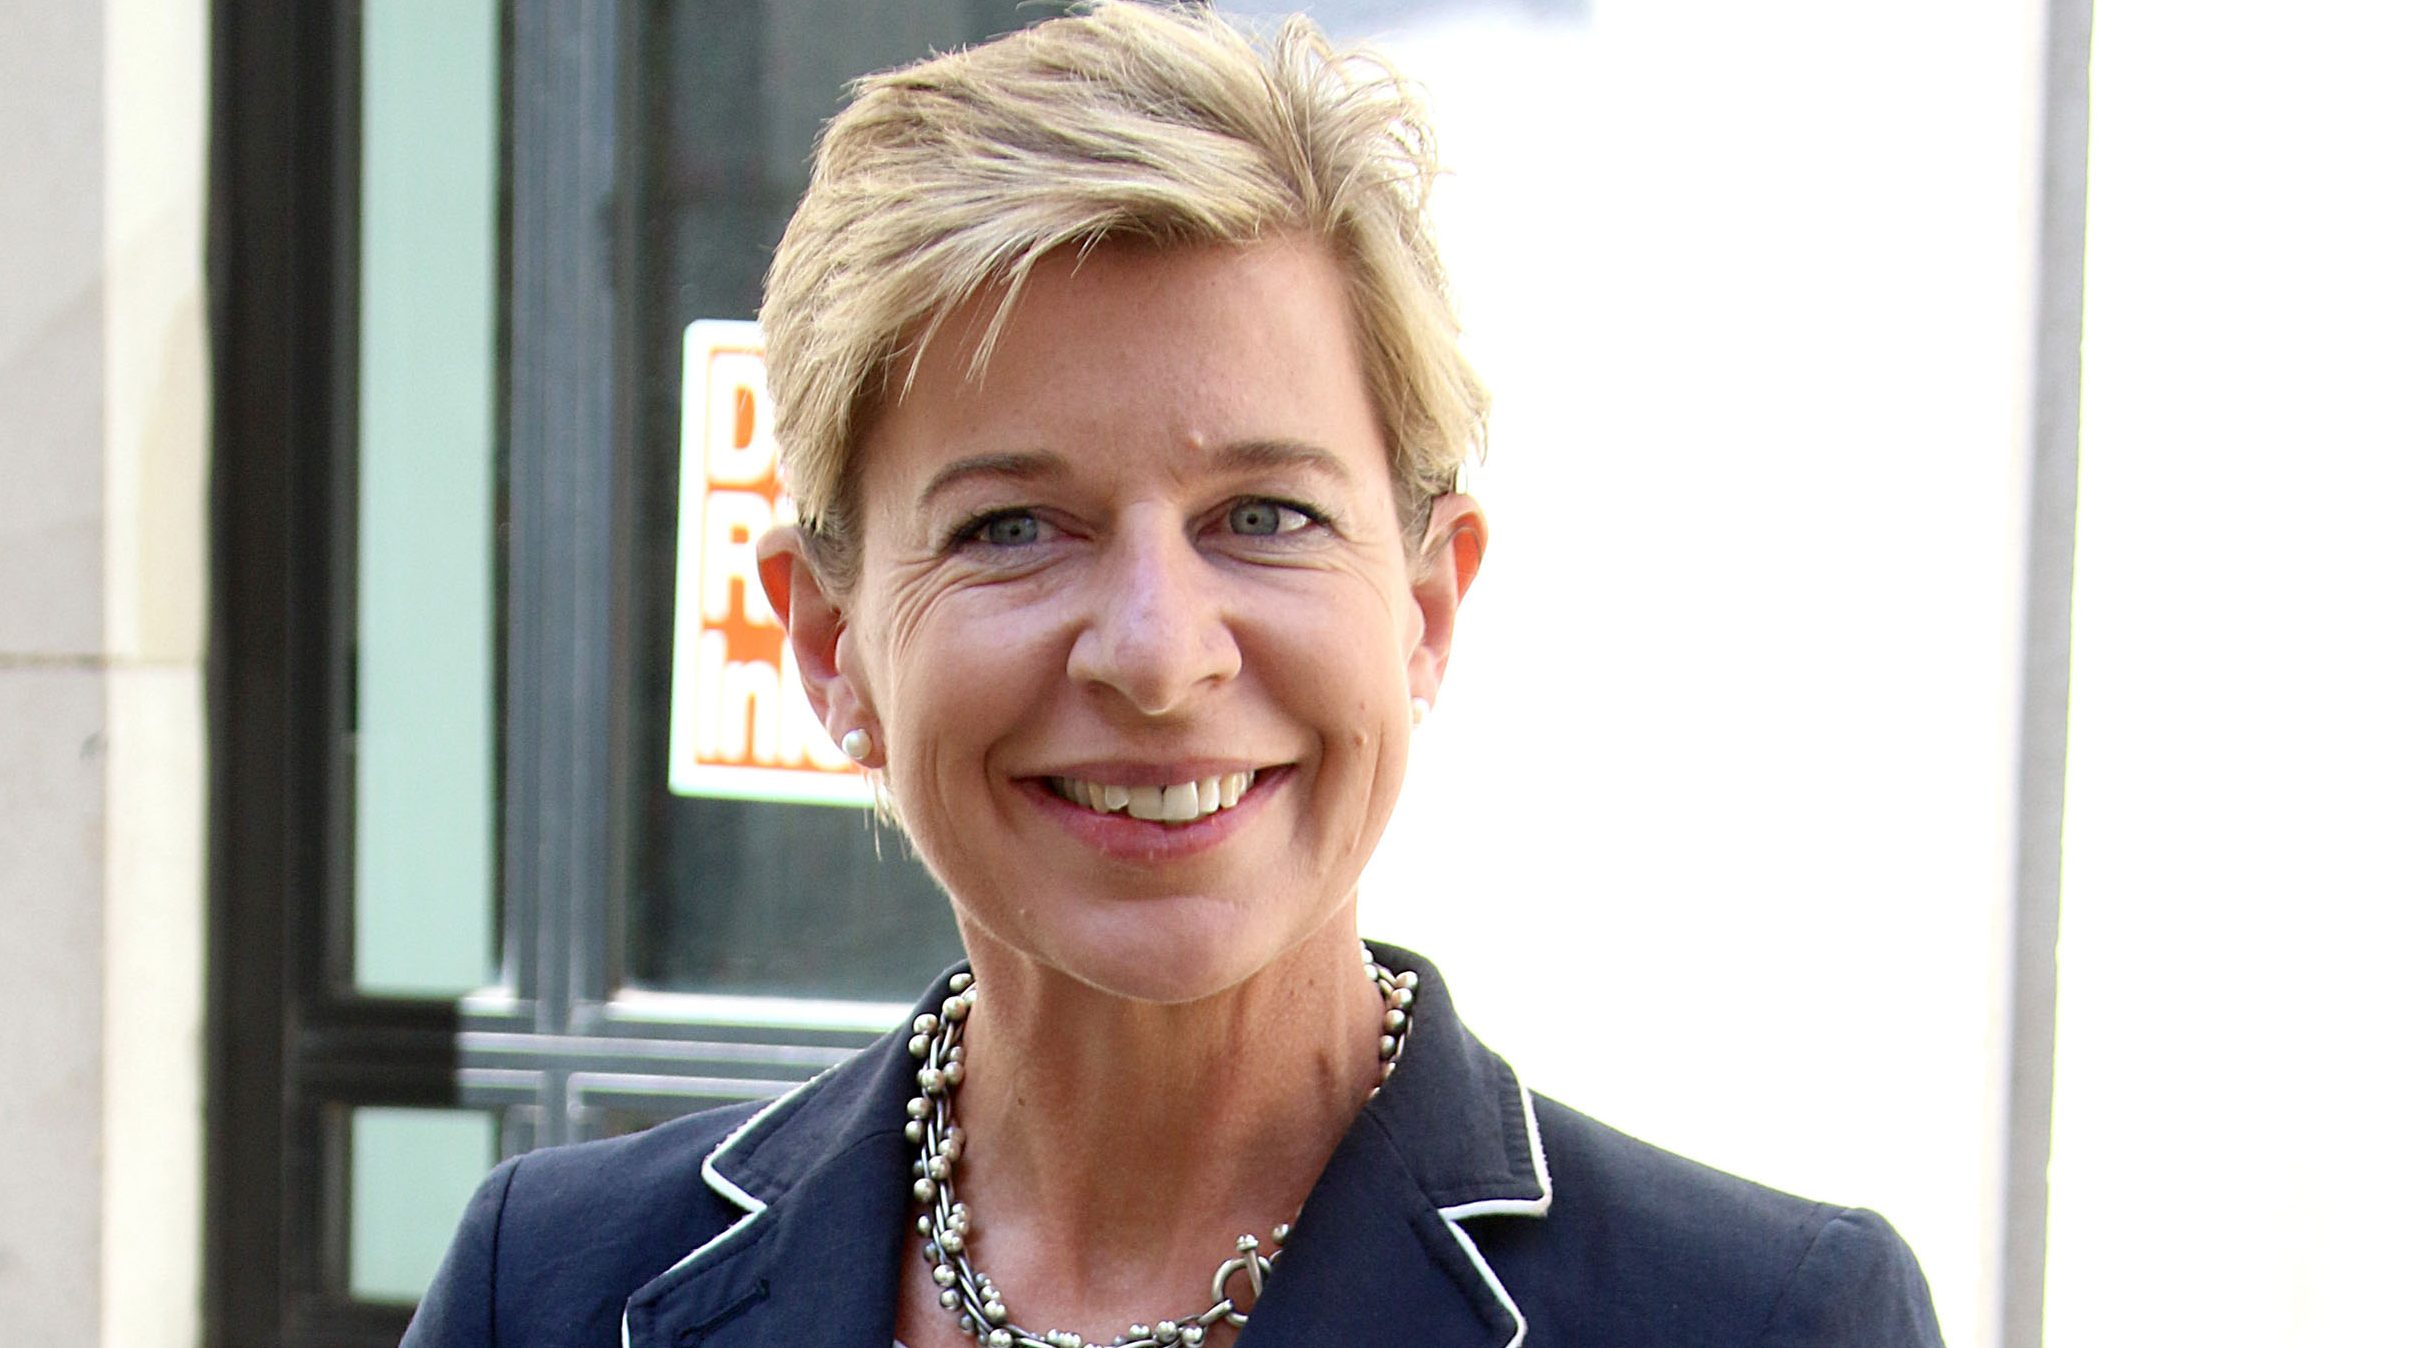 Far-right commentator Katie Hopkins suspended from Twitter for anti-hate breaches